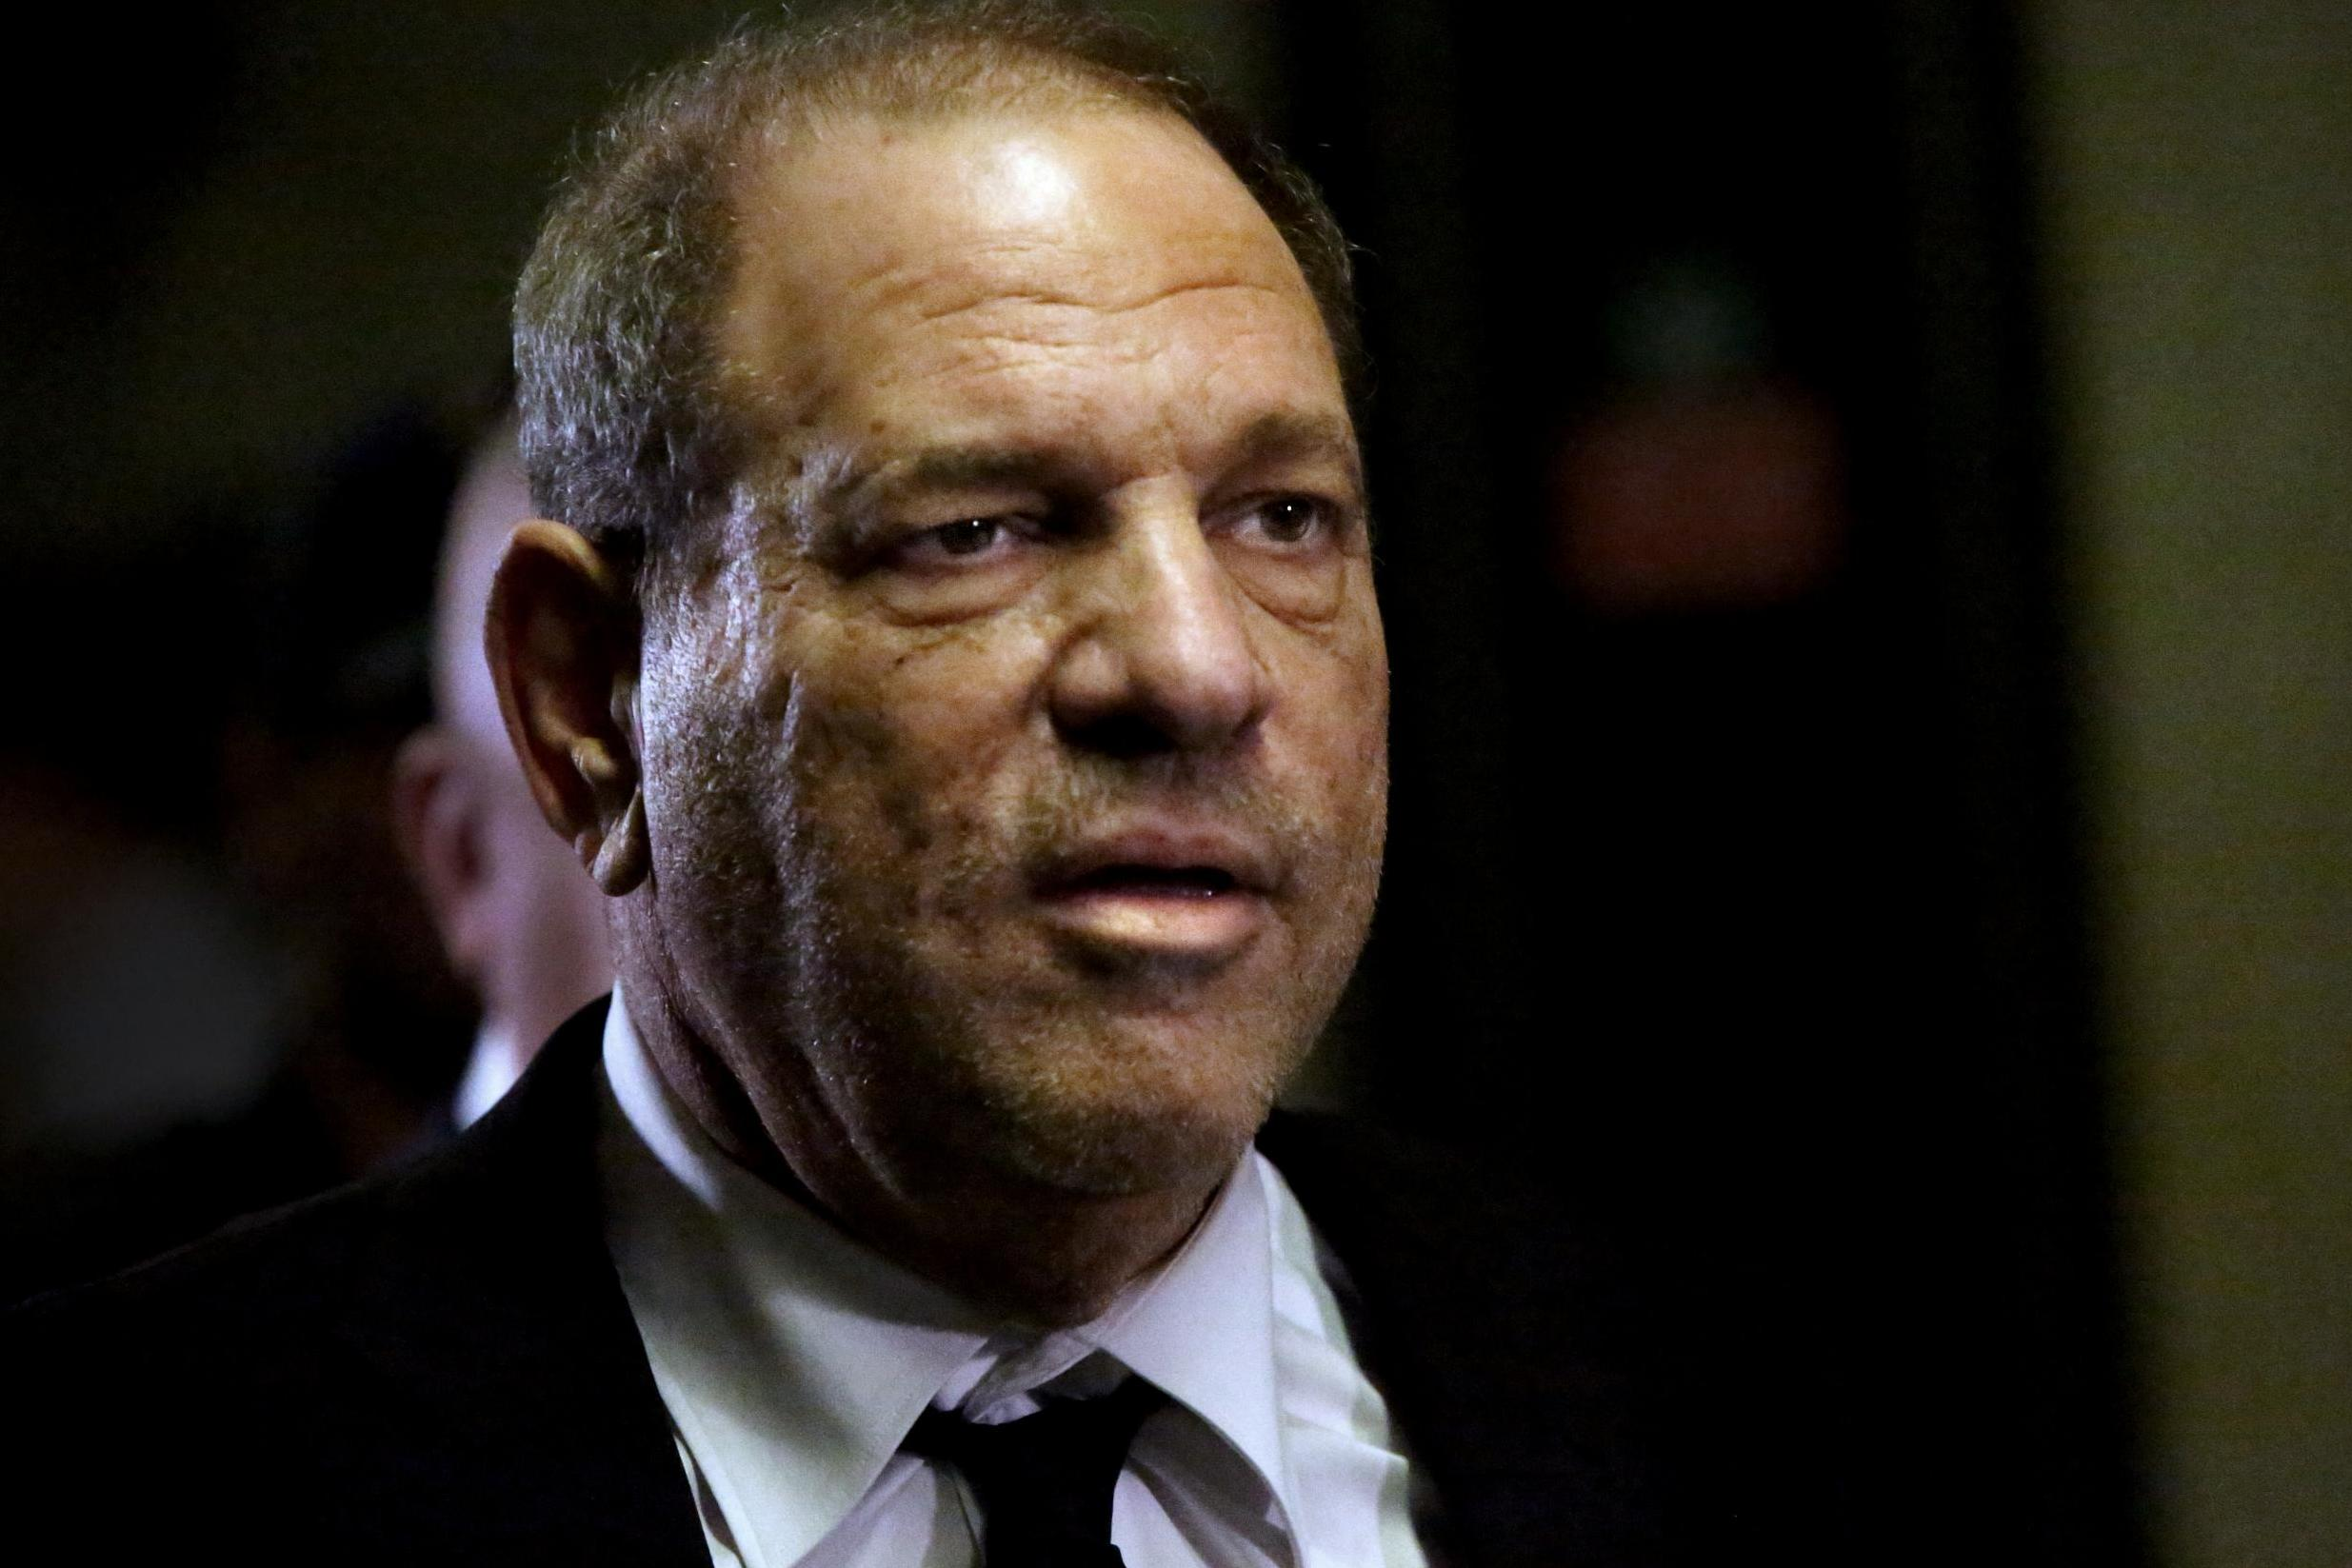 Harvey Weinstein had 'unhealthy obsession' with final film The Current War, claims director